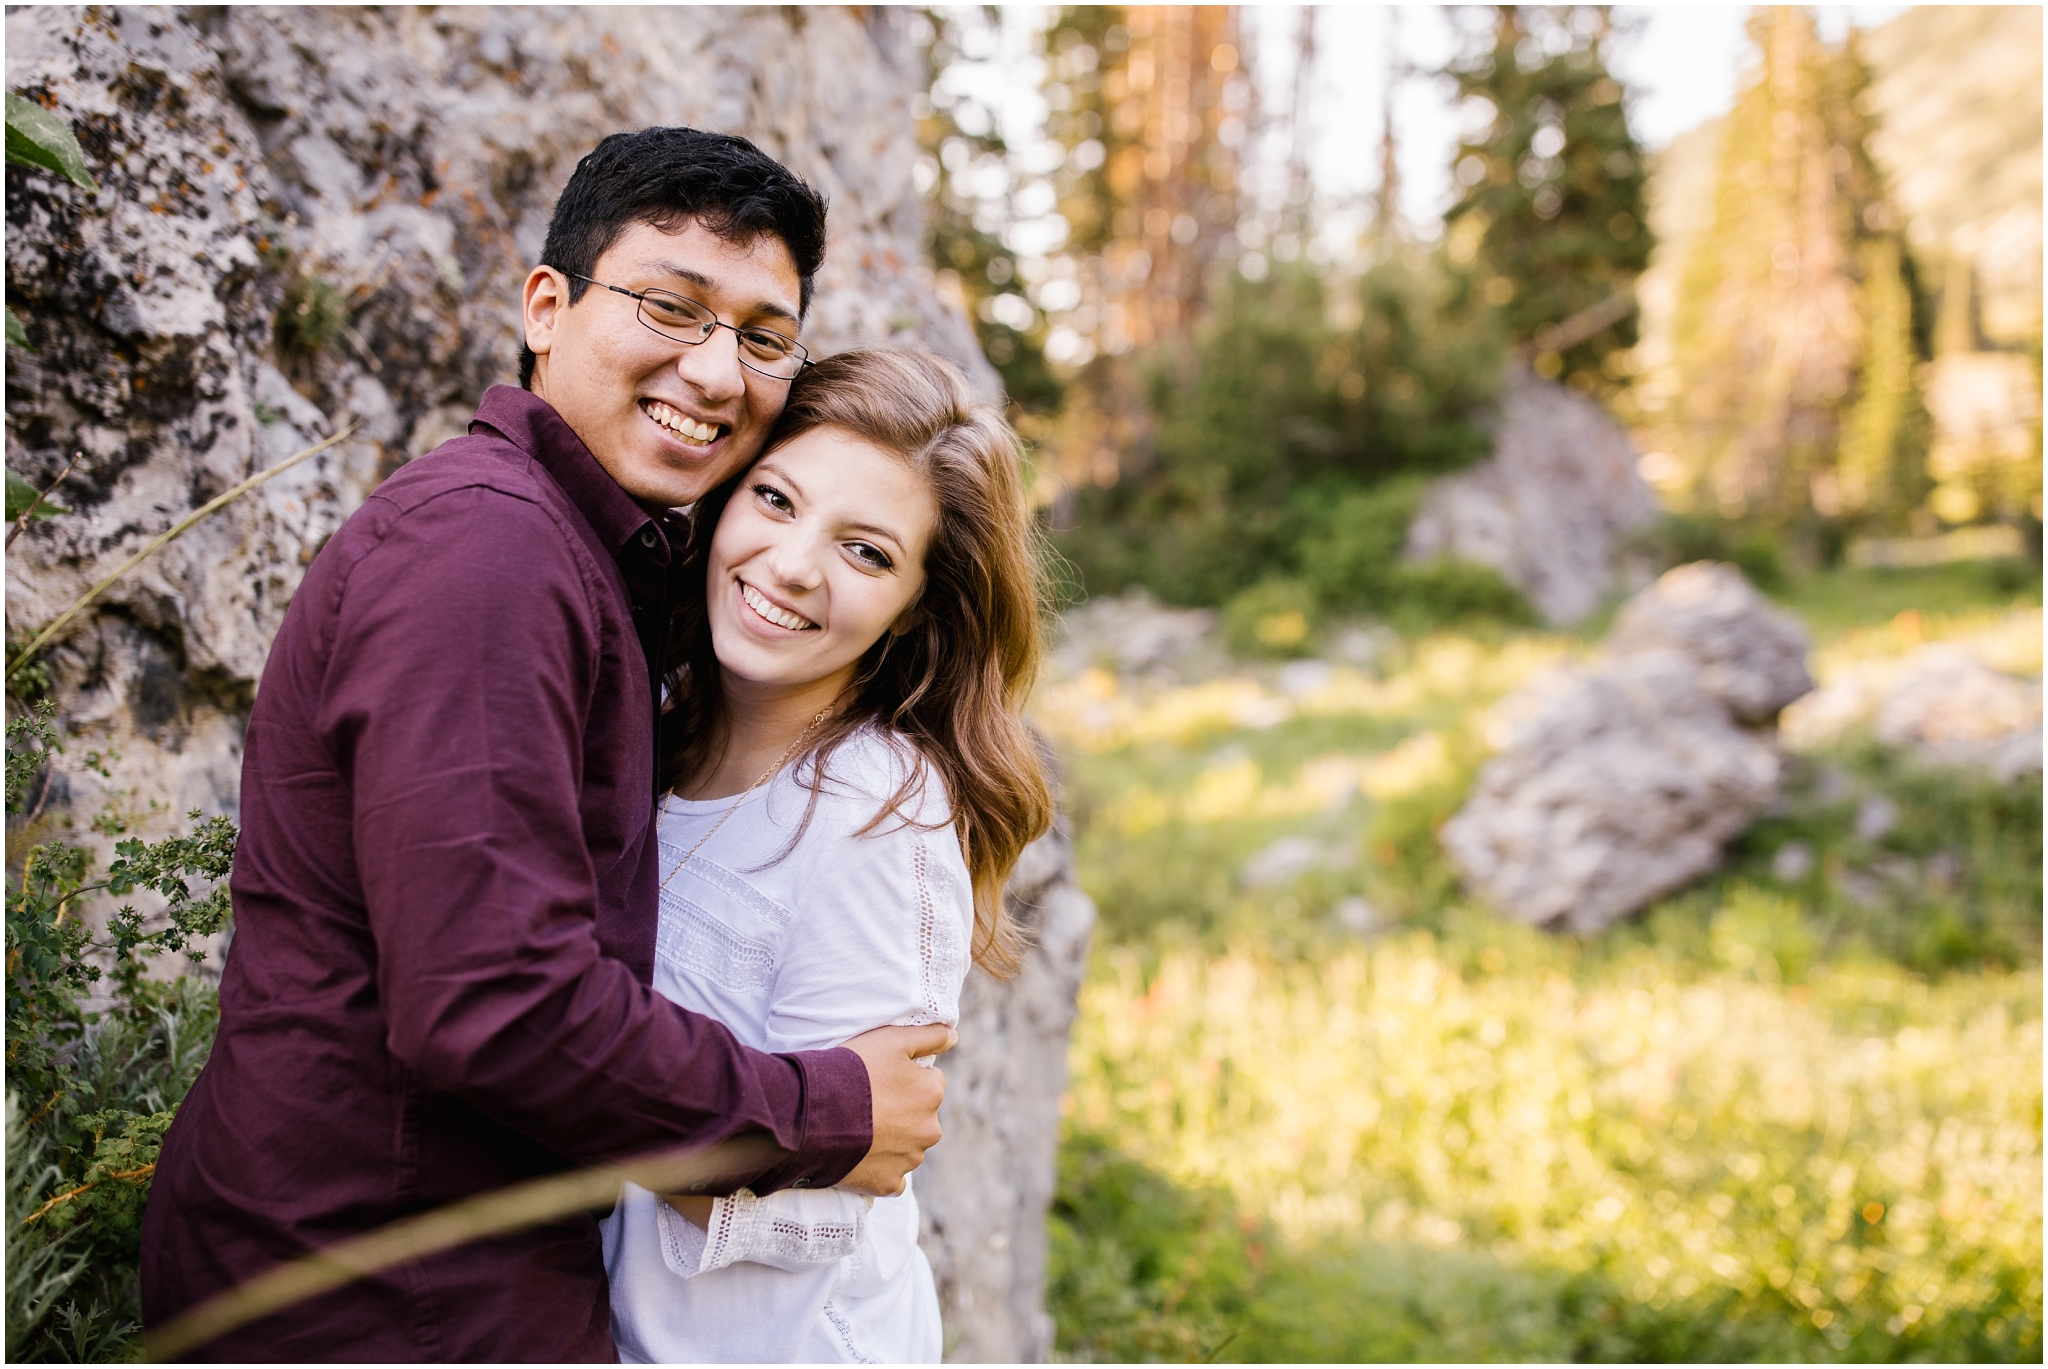 Harold and Emma-1_Lizzie-B-Imagery-Utah-Wedding-Photographer-Central-Utah-Park-City-Salt-Lake-City-Albion-Basin-Engagement-Session.jpg